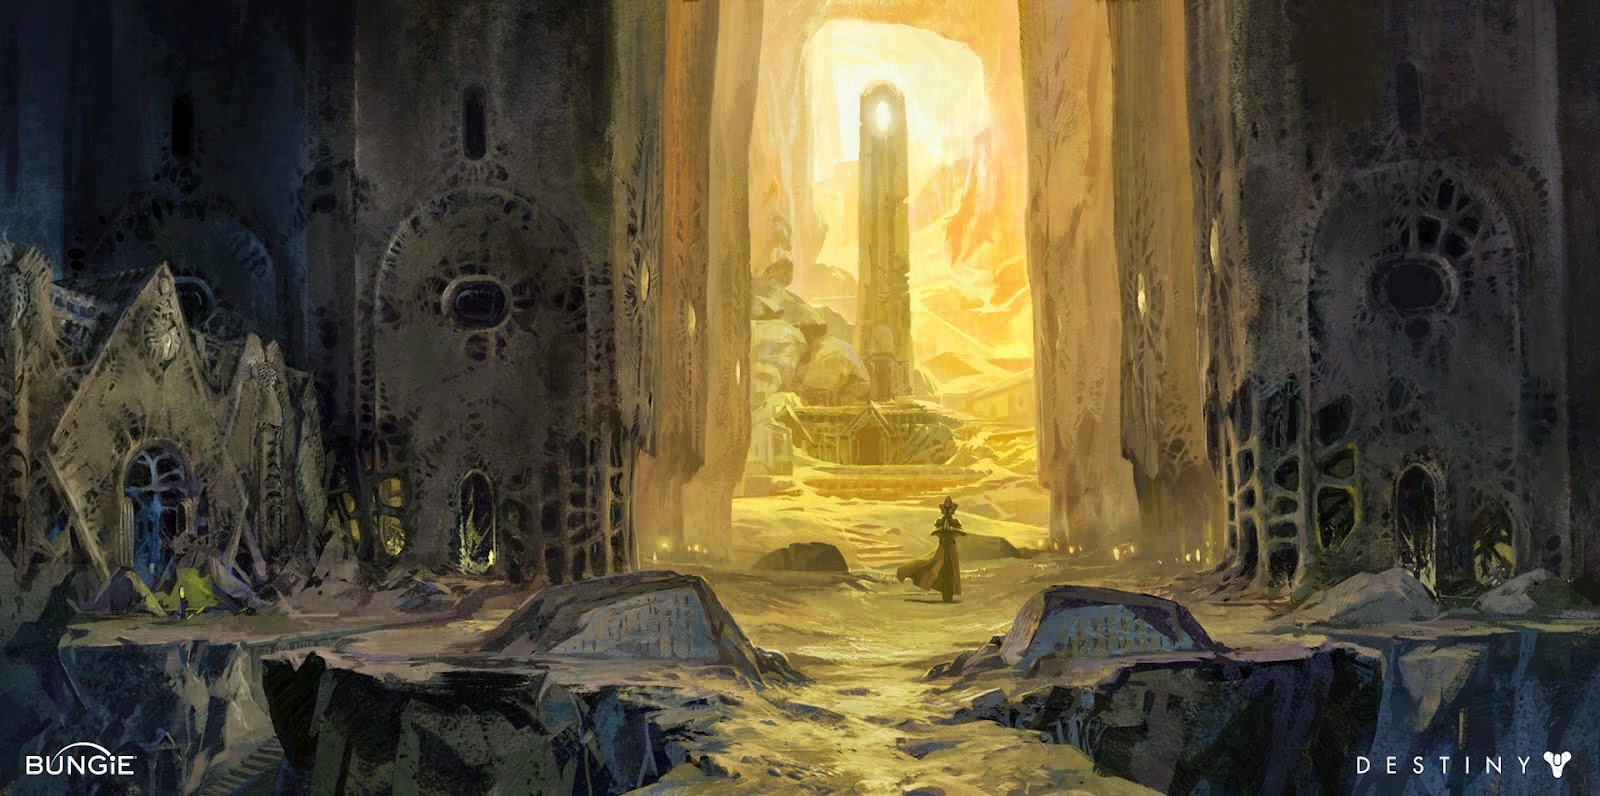 Destiny hive catacombs concept art